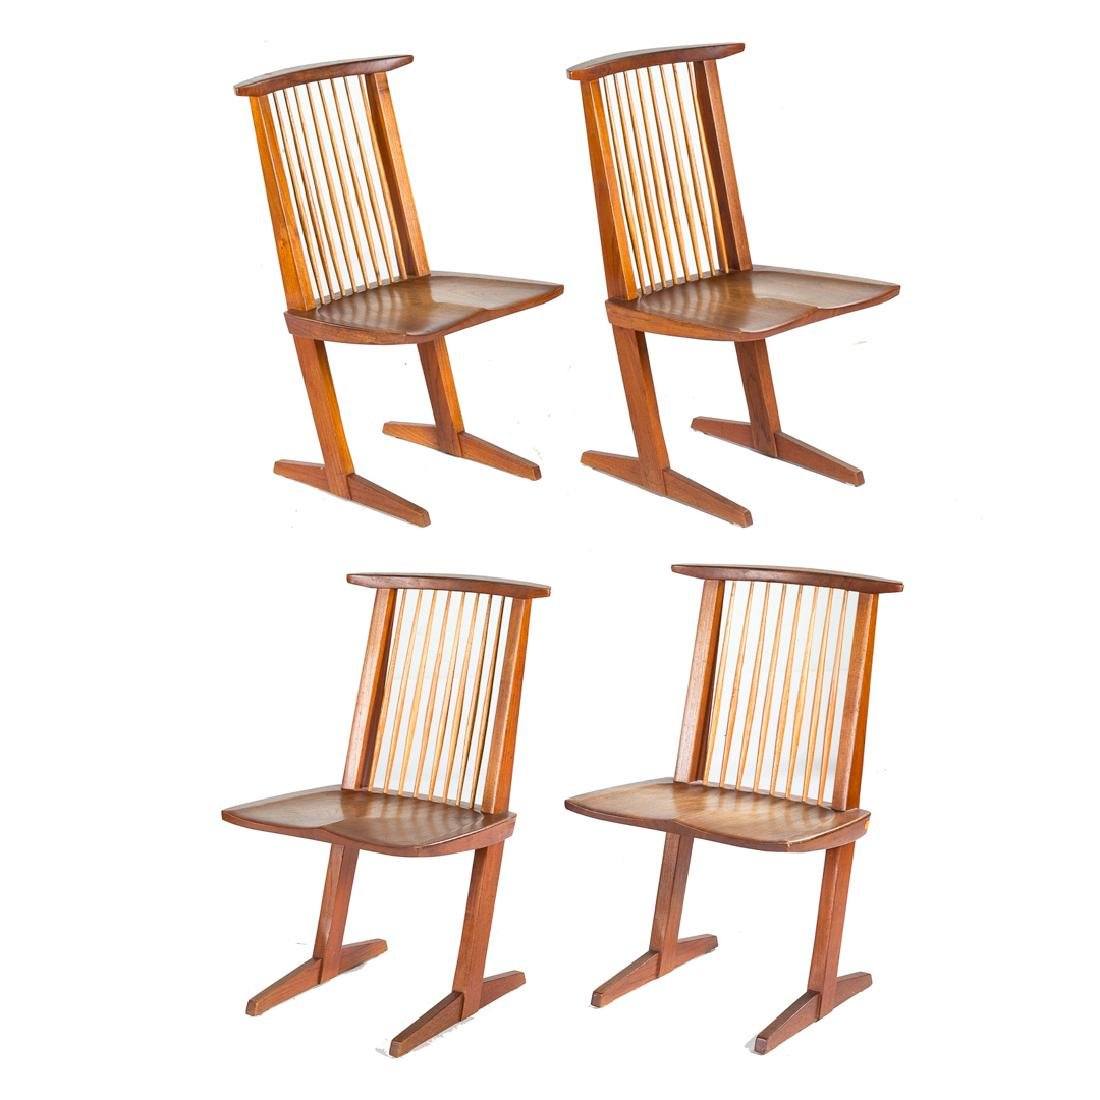 Set of Four George Nakashima Conoid Chairs - 3